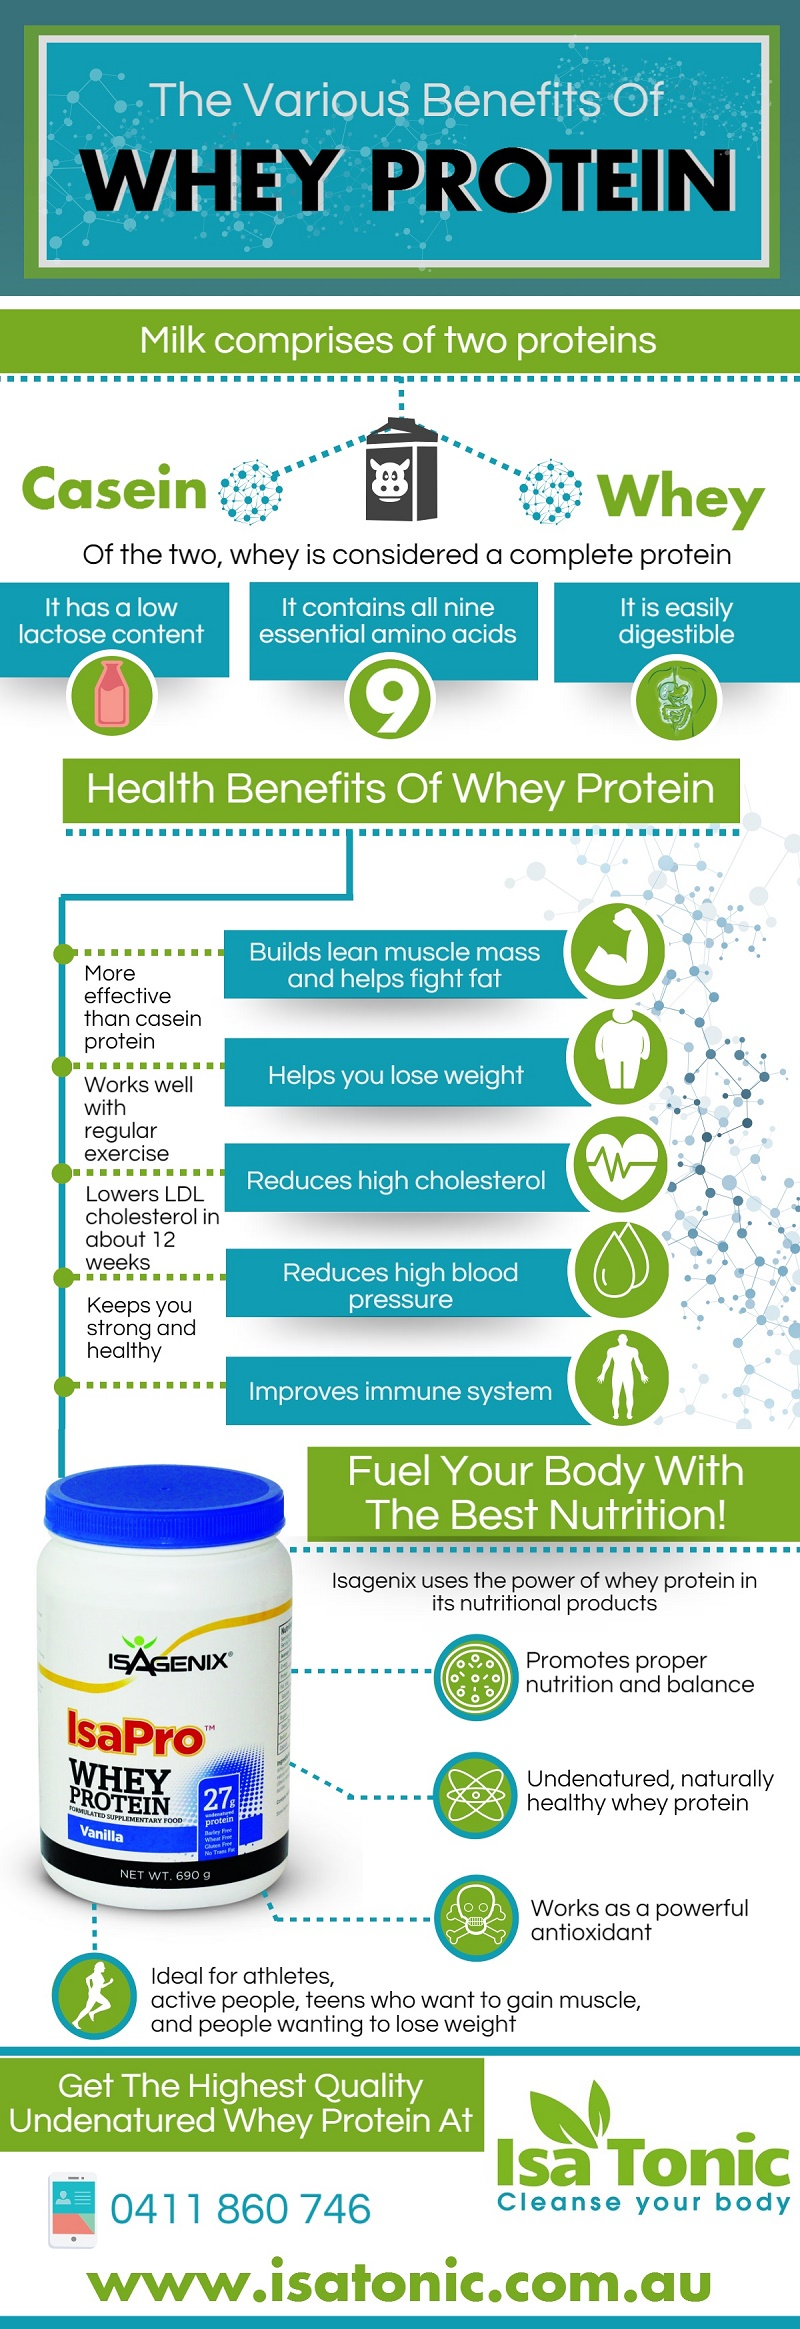 The Benefits of Whey Protein Infographic